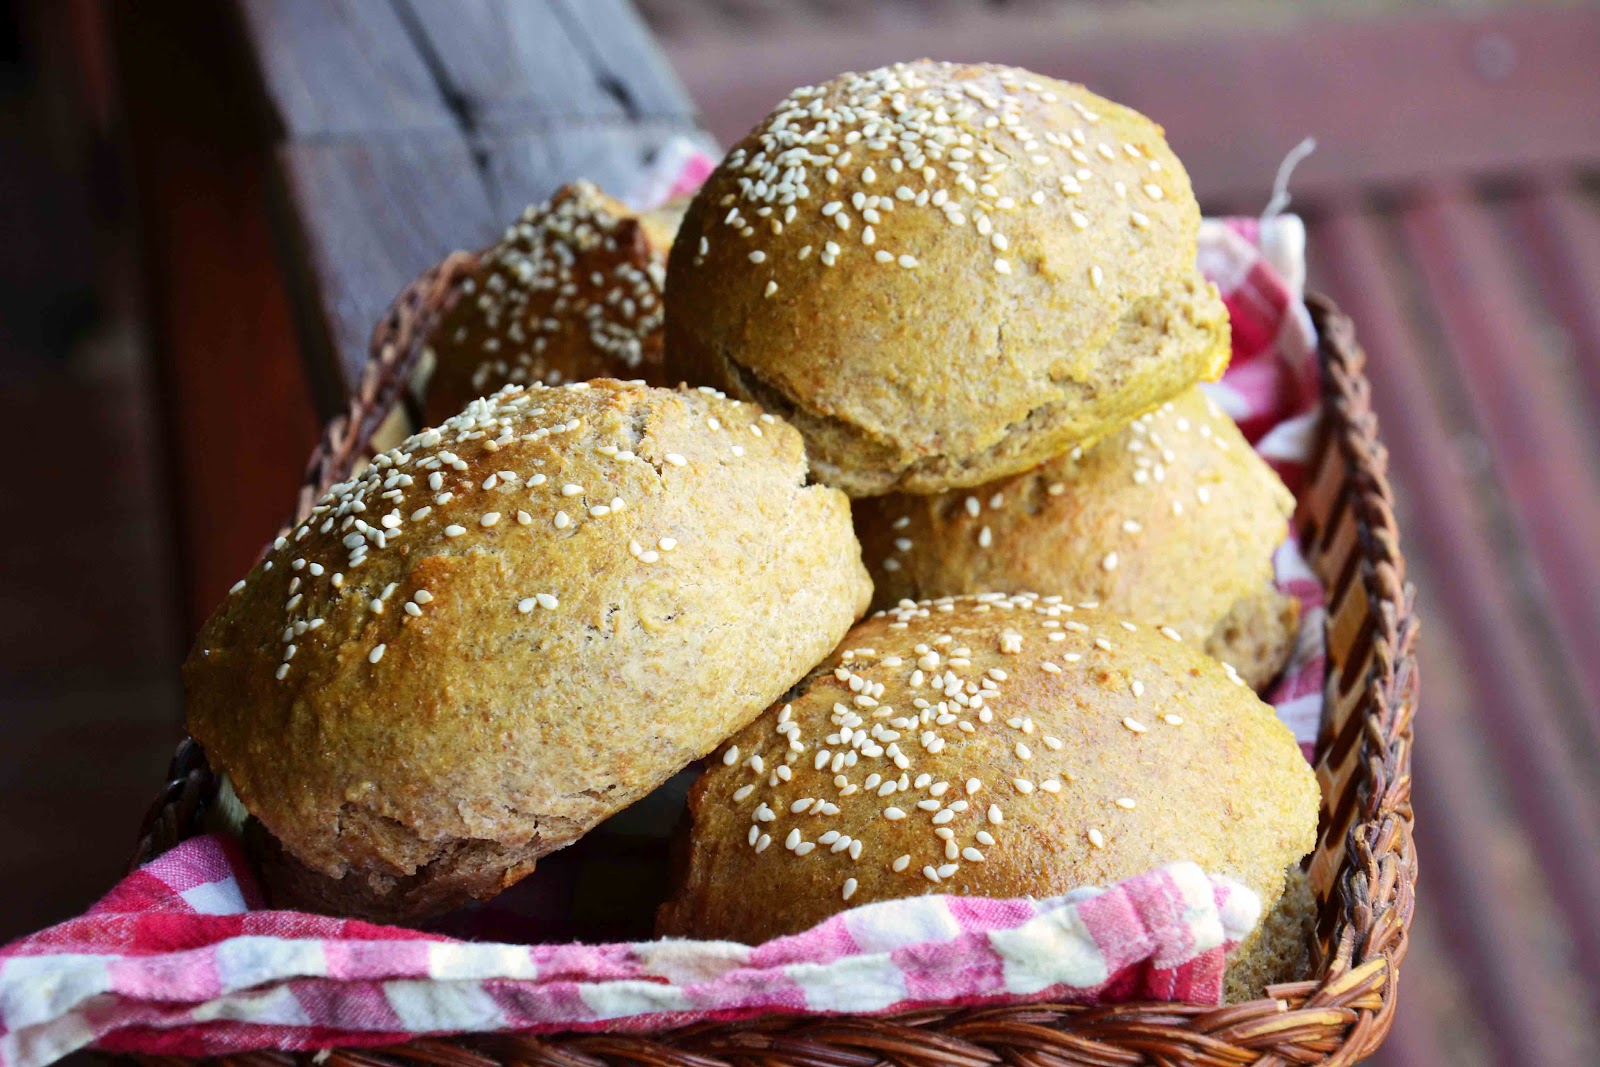 ... Cook: Turkey-Mushroom Burger with Homemade Whole Wheat Rye Buns